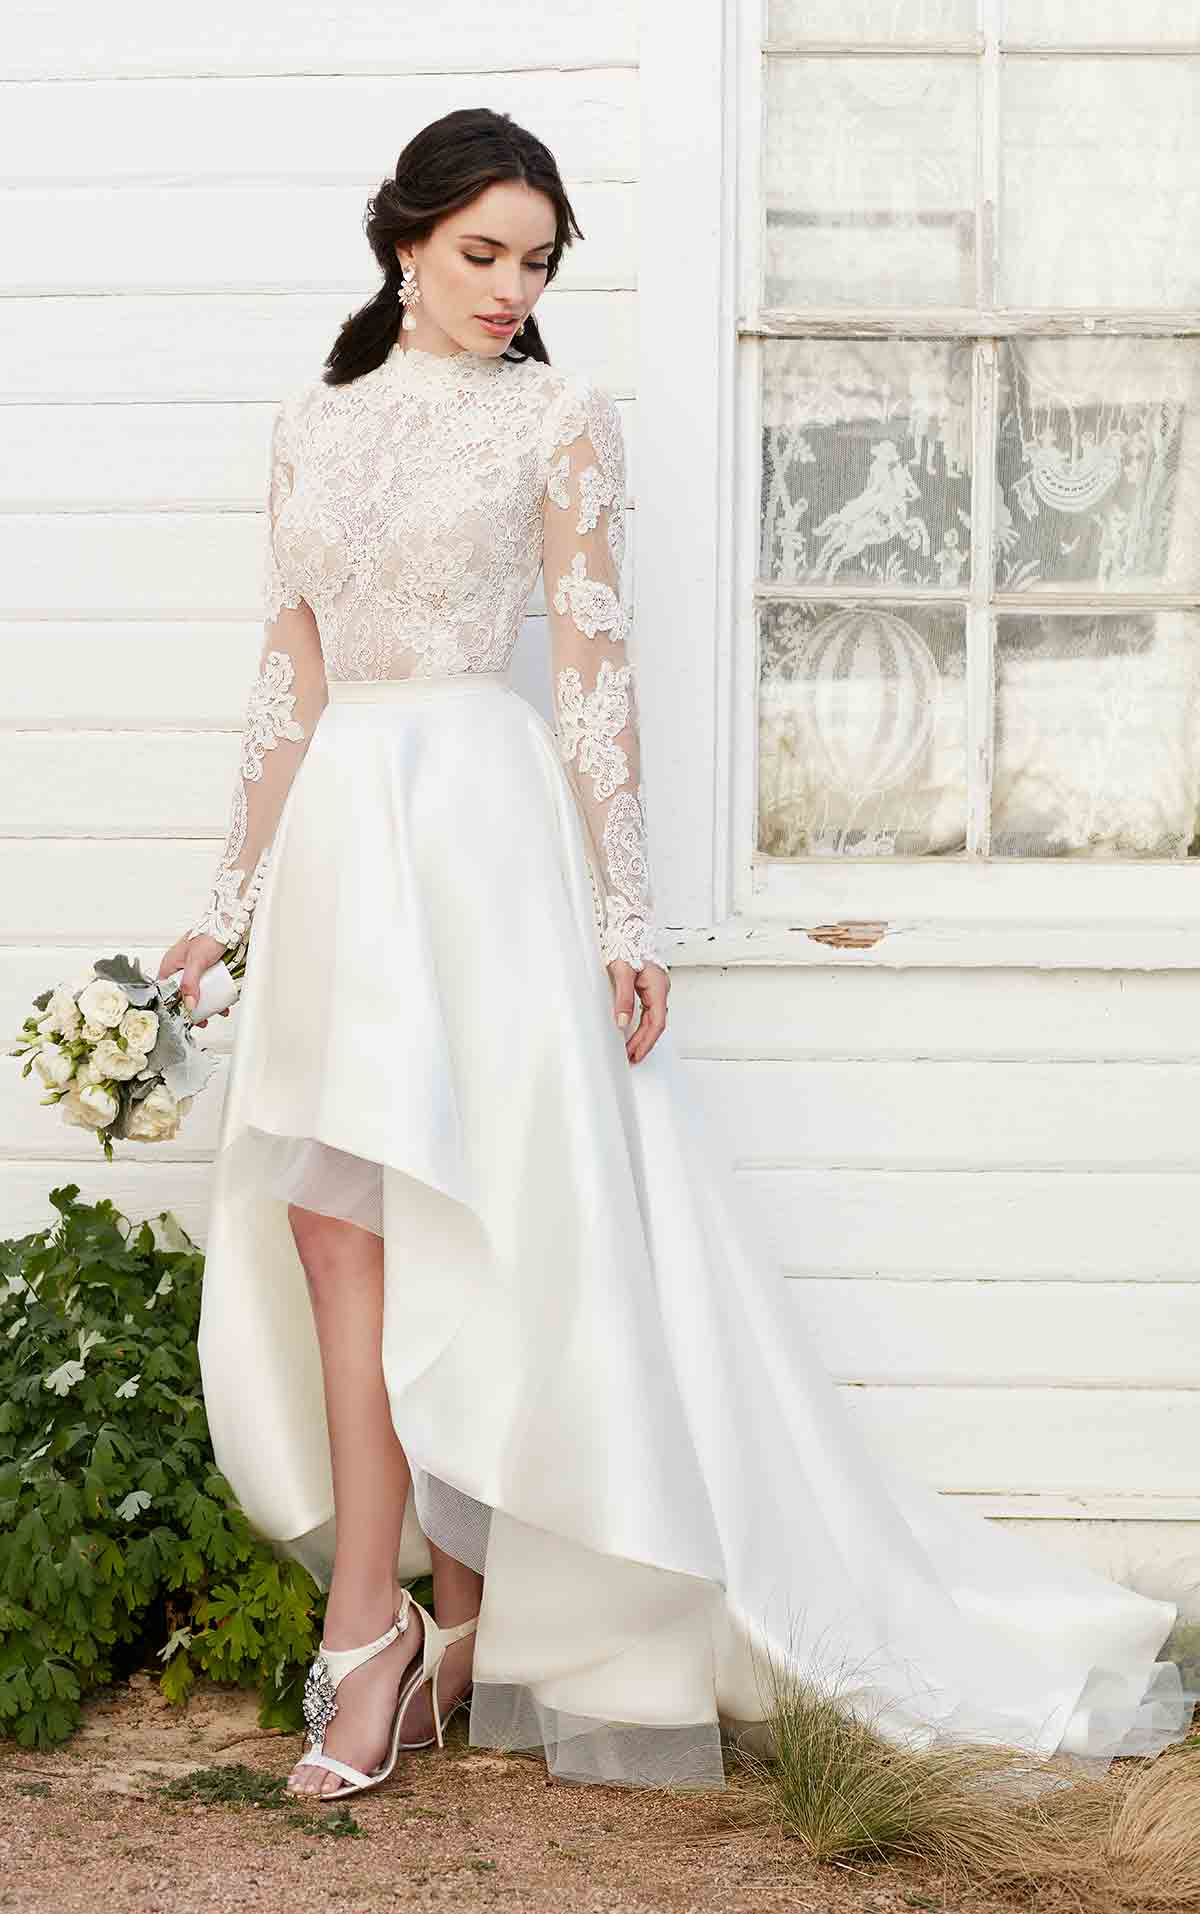 A high low wedding gown with long sleeves